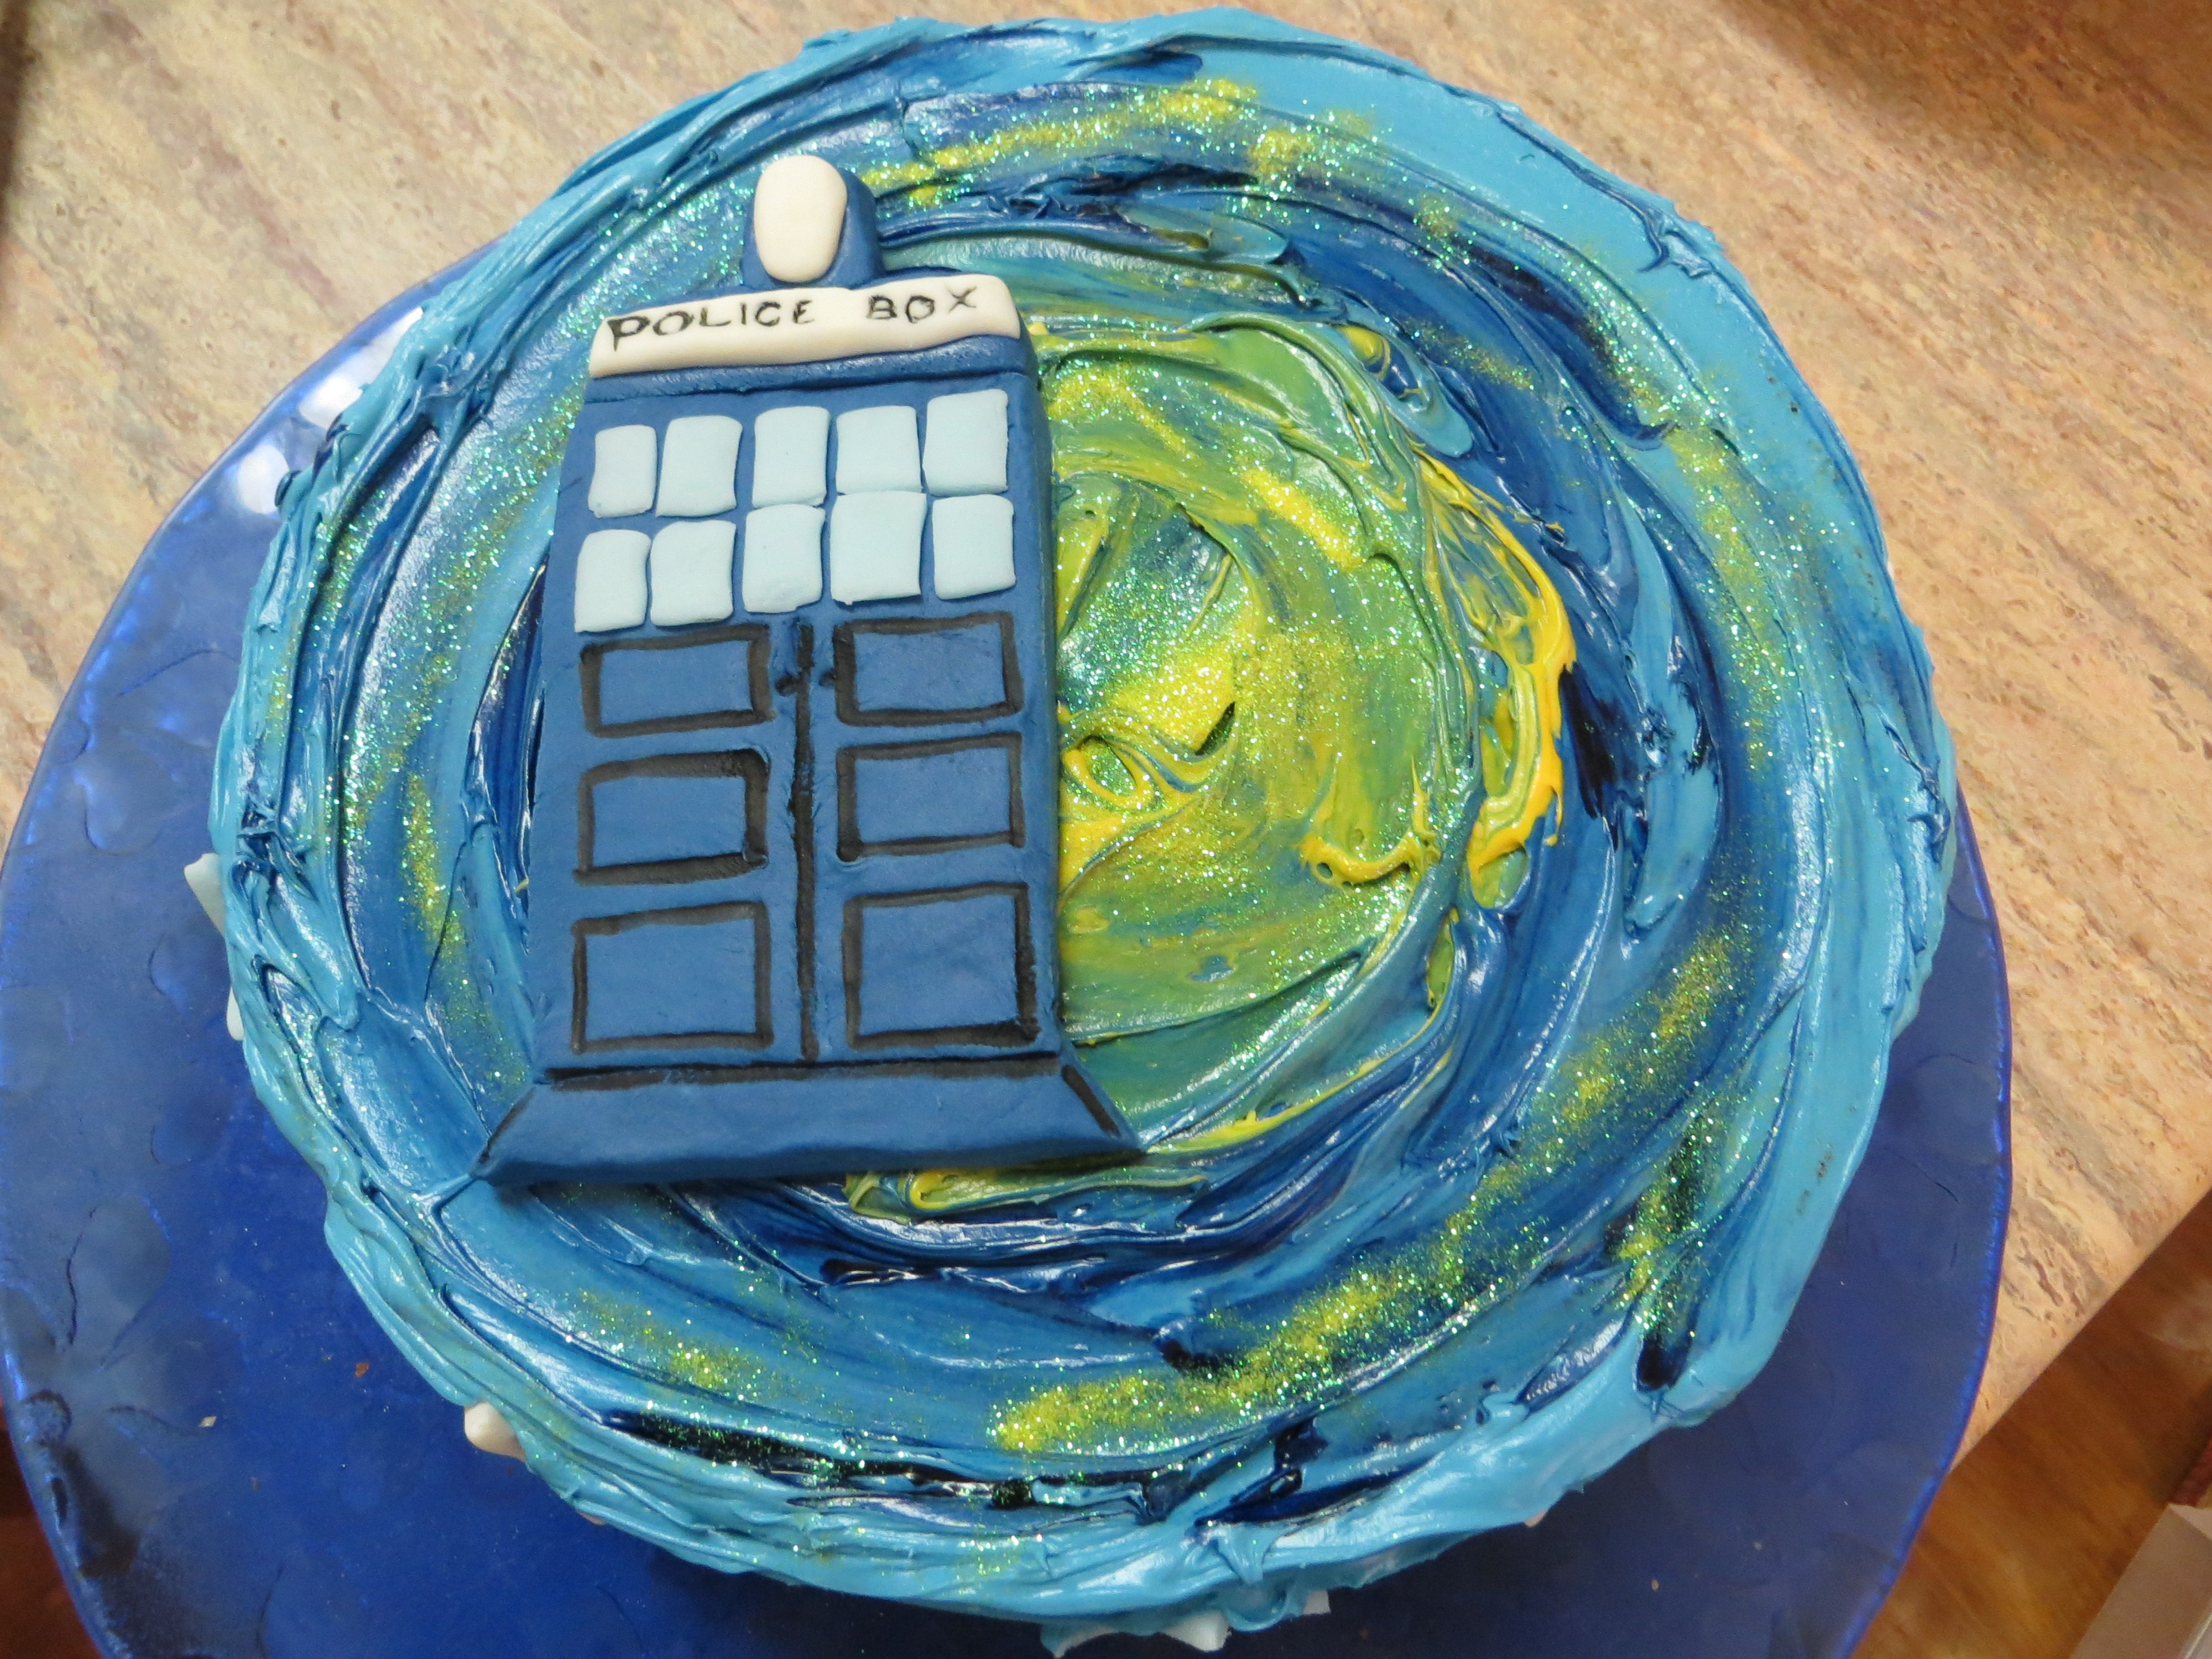 Dr Who Birthday Cakeedible glitter meant it even glowed in the